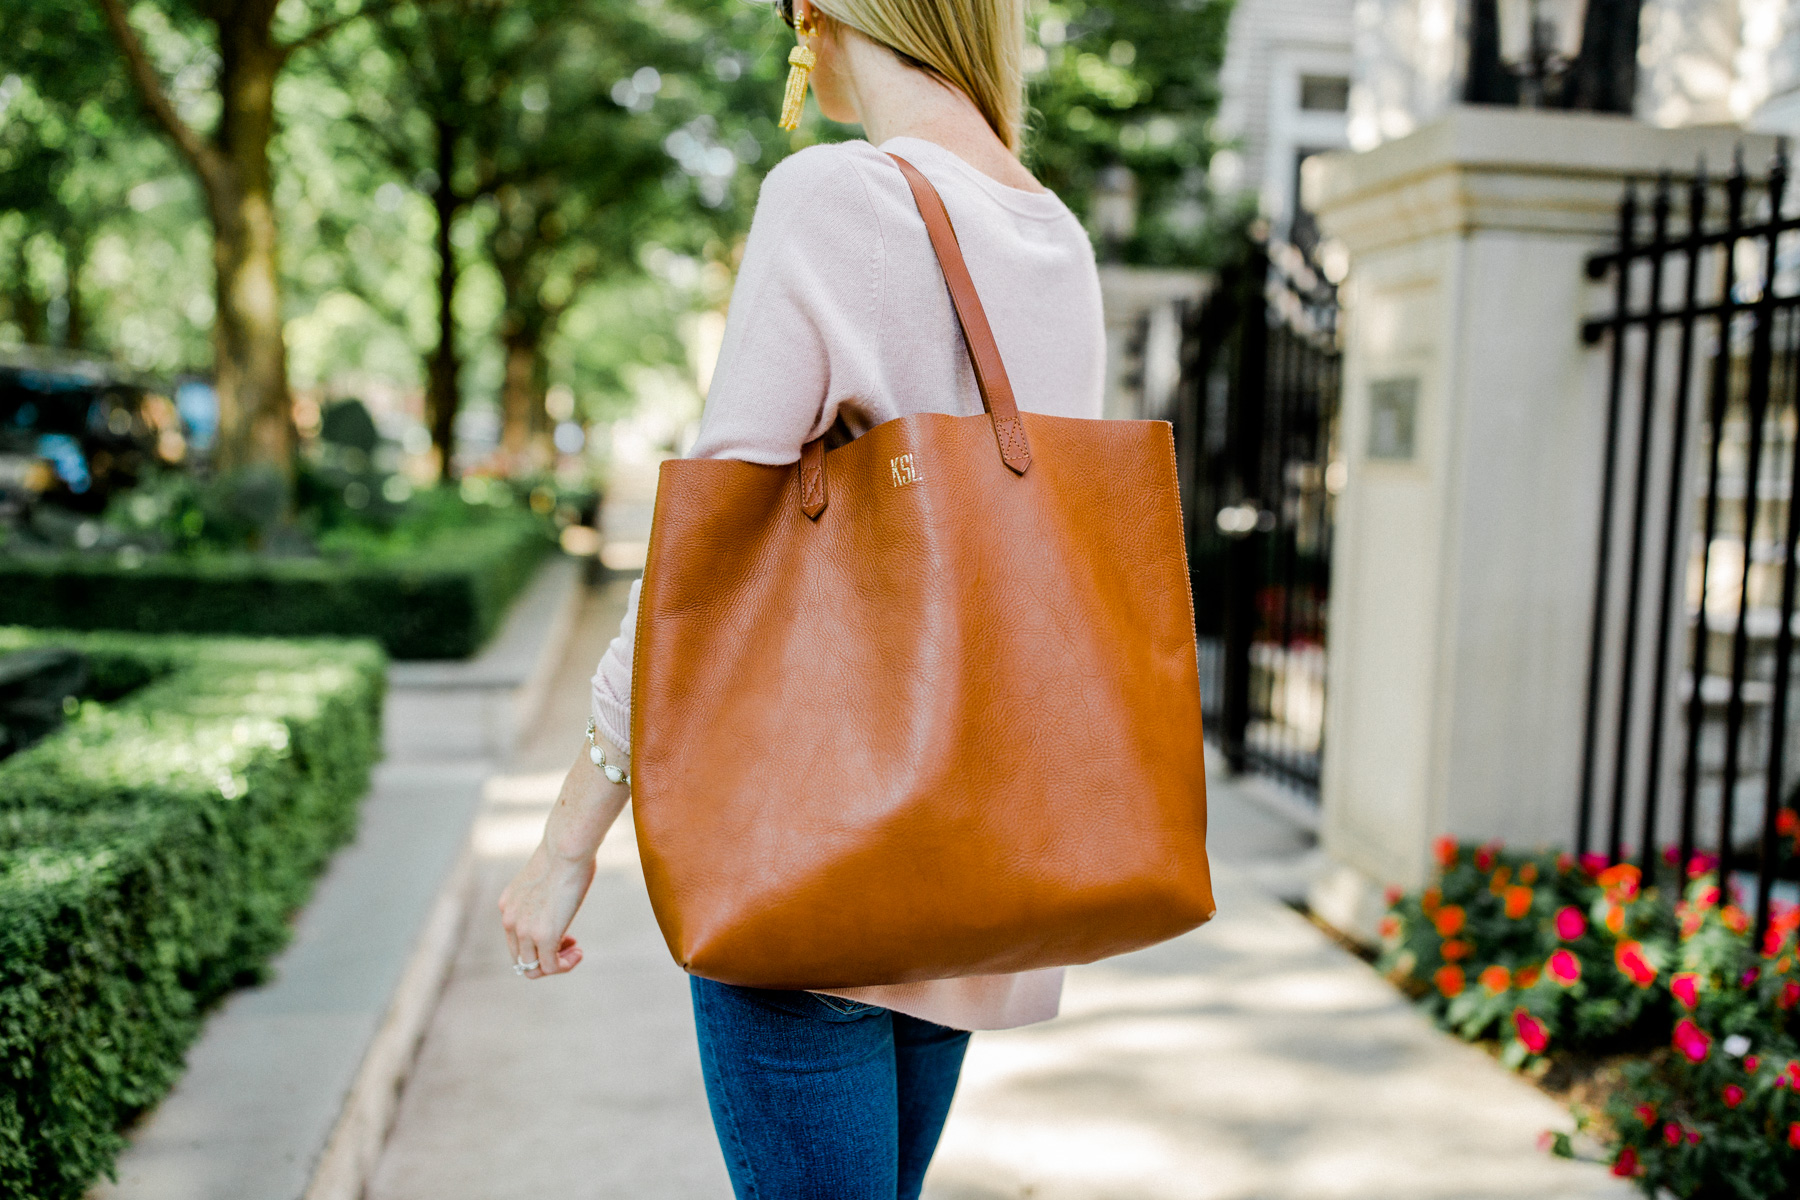 93173c354 Shopbop Sale: What to Buy - Kelly in the City